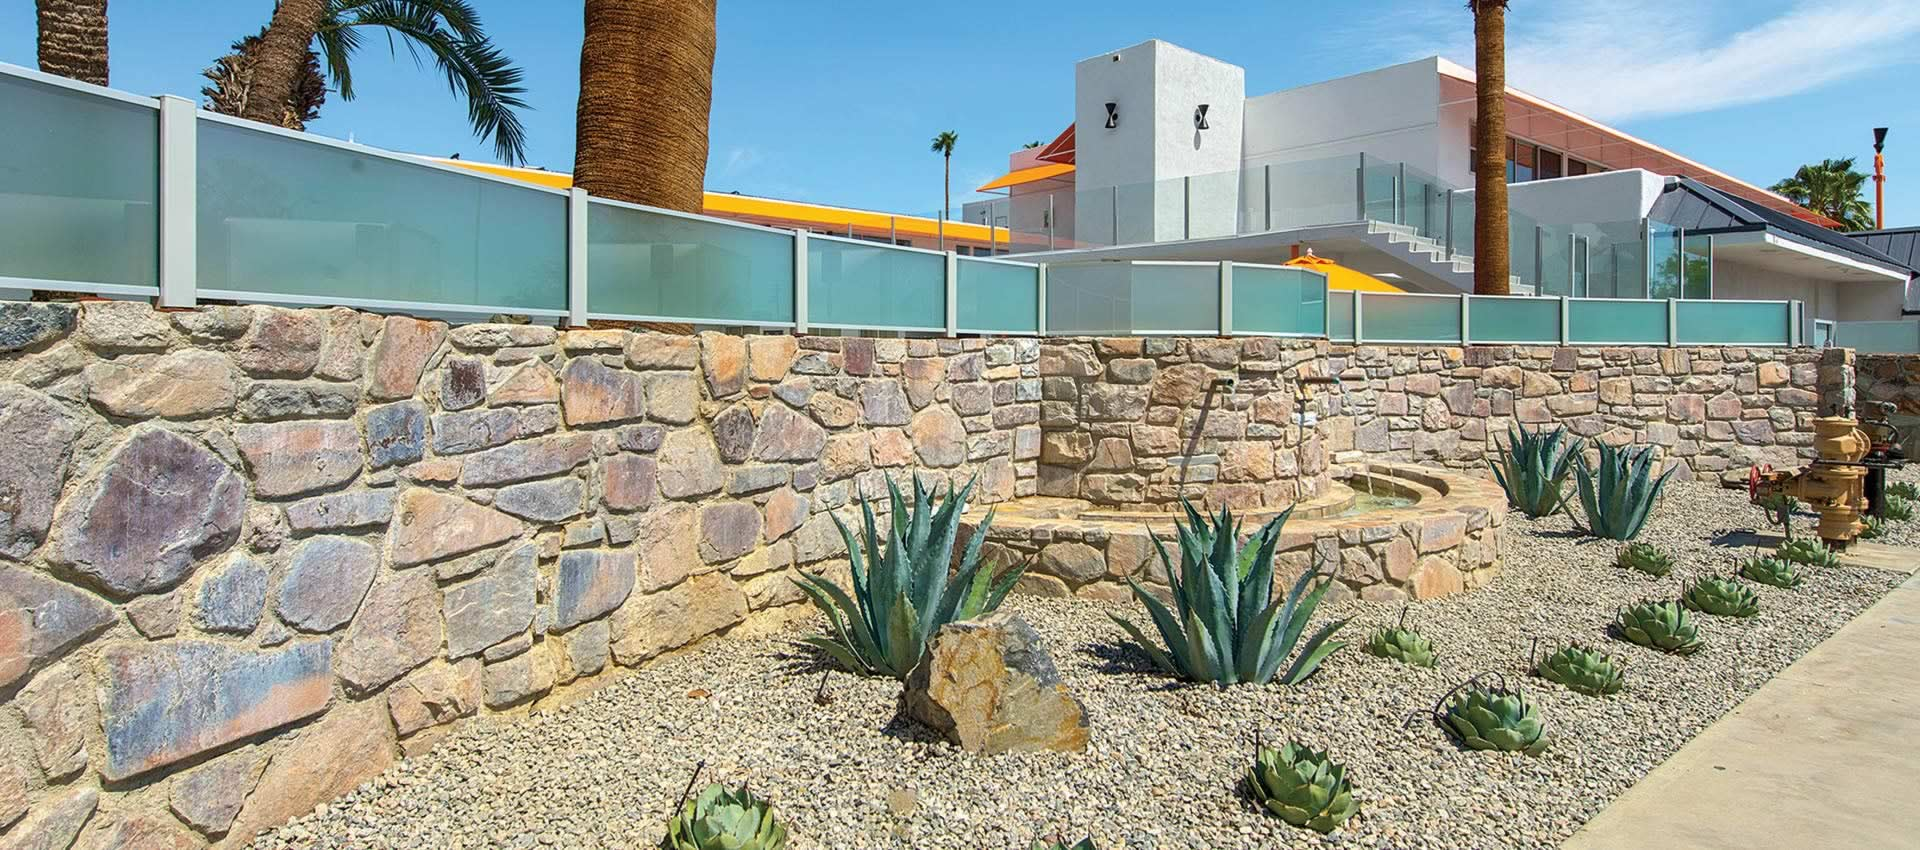 front of the hotel, the rock wall with cactus plants and palm trees